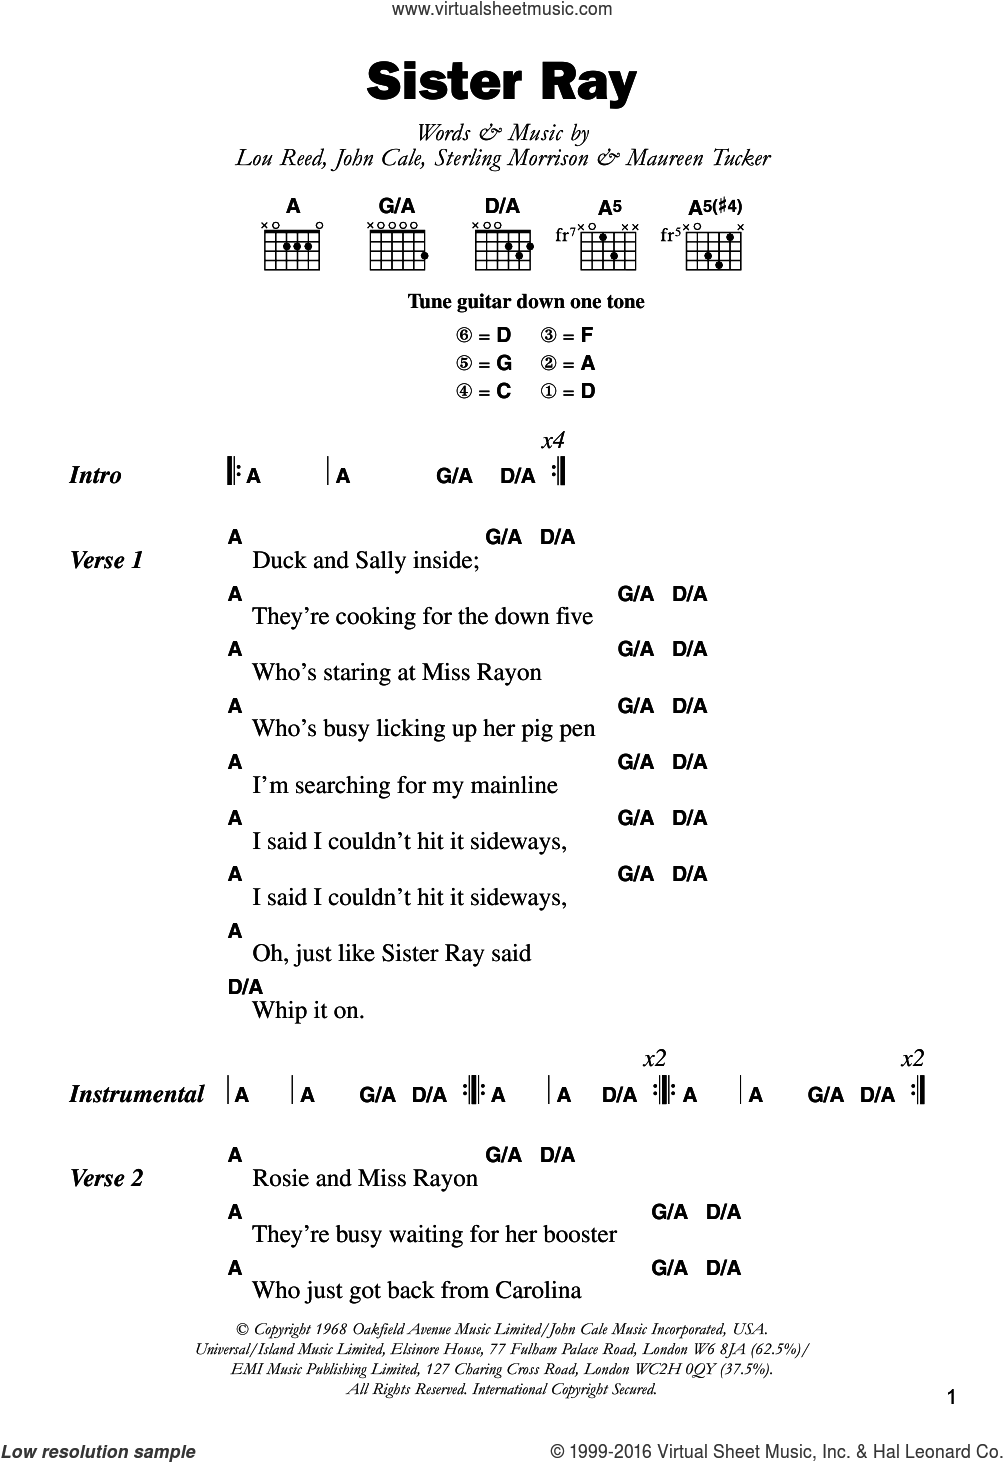 Sister Ray sheet music for guitar (chords) by The Velvet Underground, John Cale, Lou Reed, Maureen Tucker and Sterling Morrison, intermediate skill level